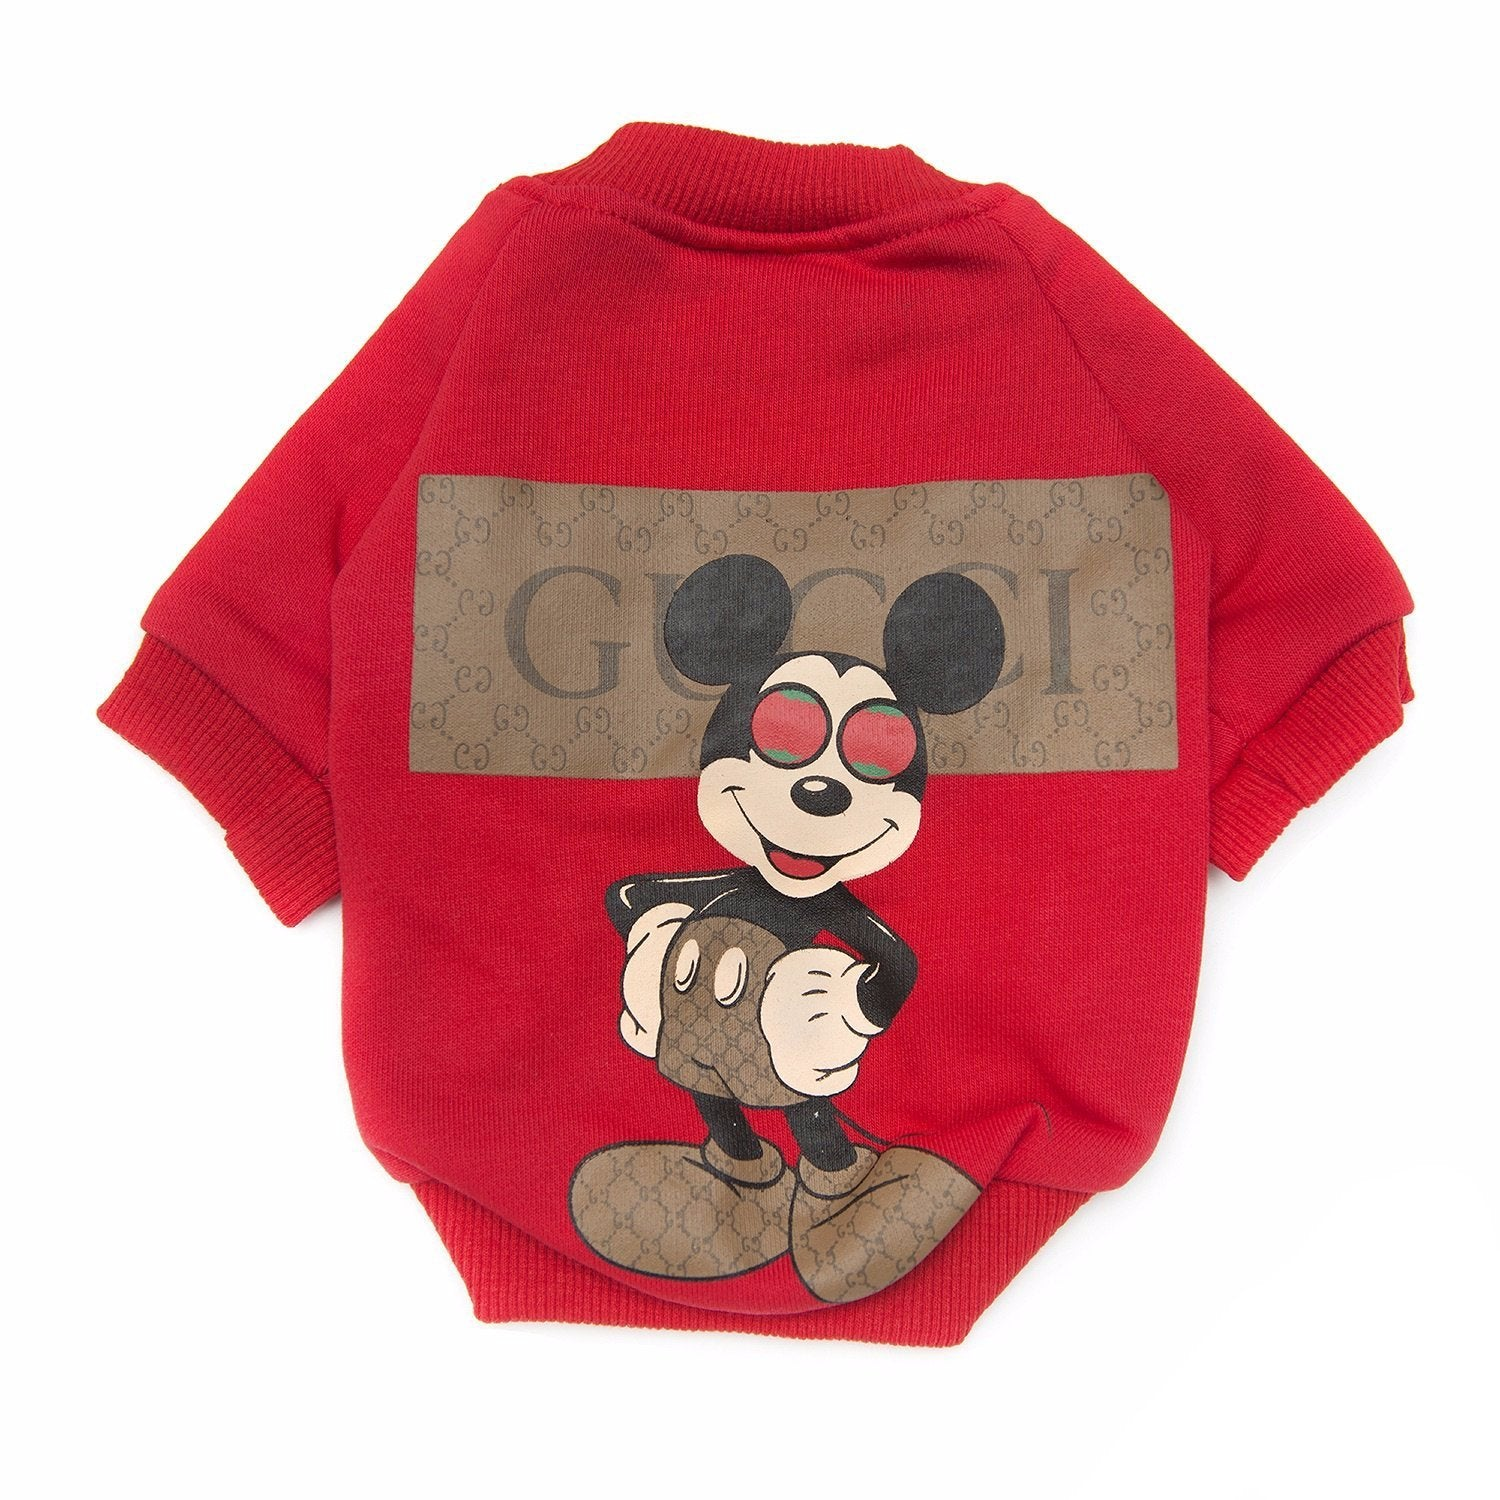 GIGI MICKEY SWEATER - PupremeNewYork